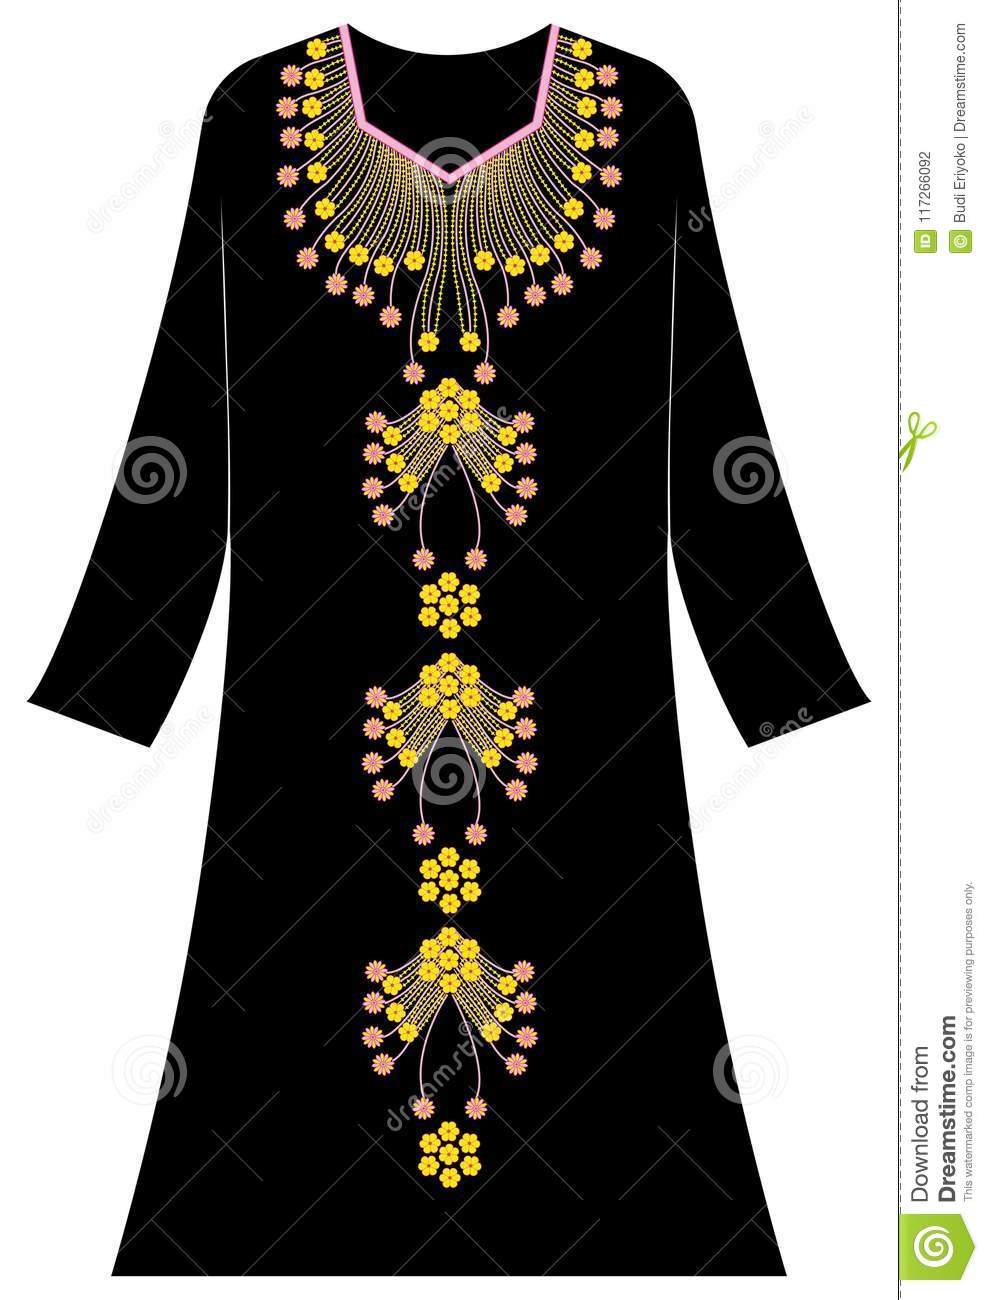 Women S Clothing Unique And Interesting Style Stock Vector Illustration Of Clothinglily Black 117266092